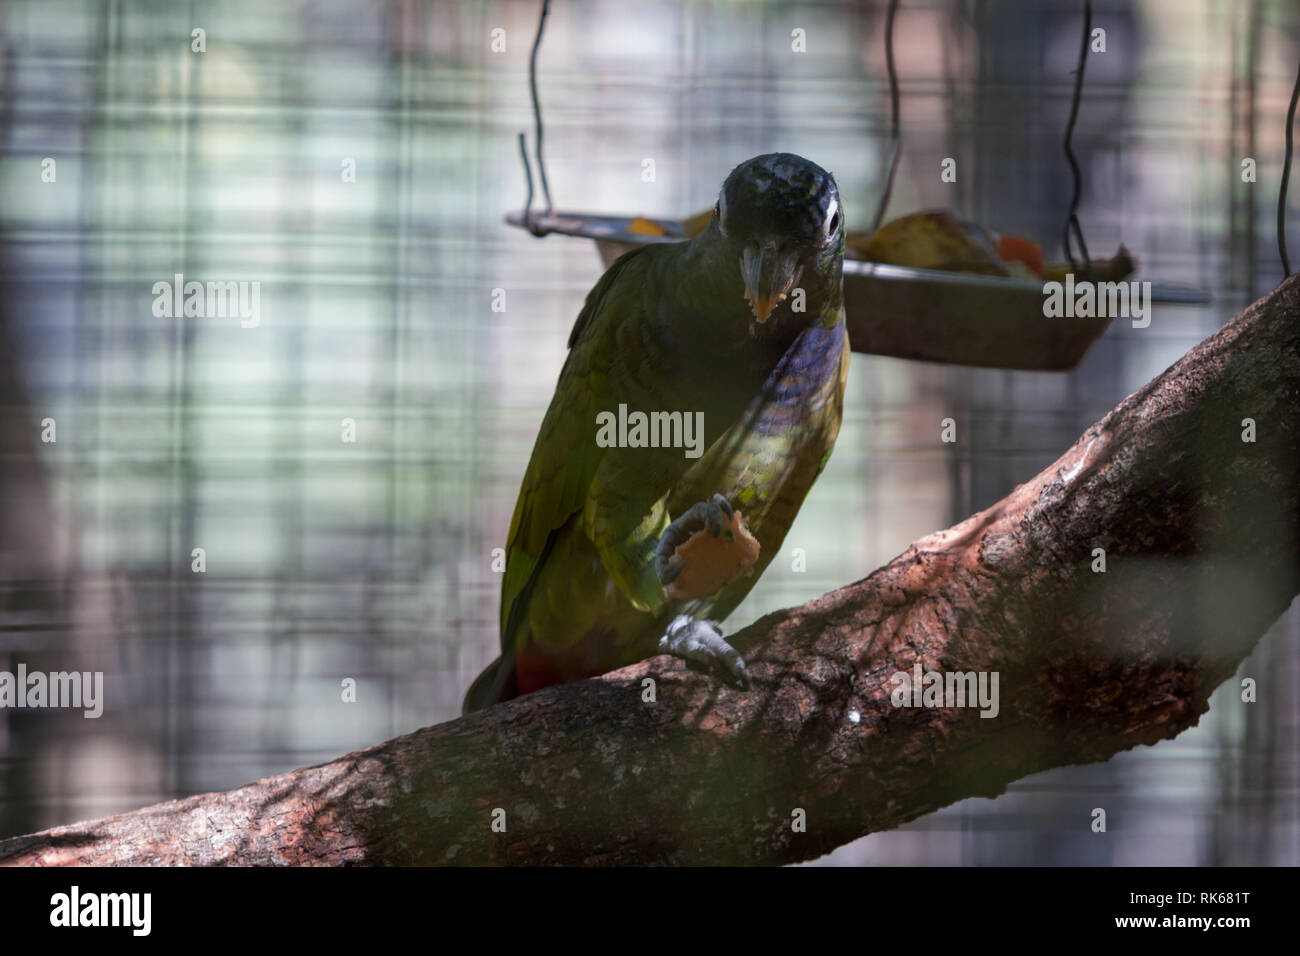 Scaly-headed parrot (Pionus maximiliani), aka scaly-headed pionus, Maximilian pionus, Maximilian parrot, feeding inside a cage at Asuncion Zoo, Paragu - Stock Image